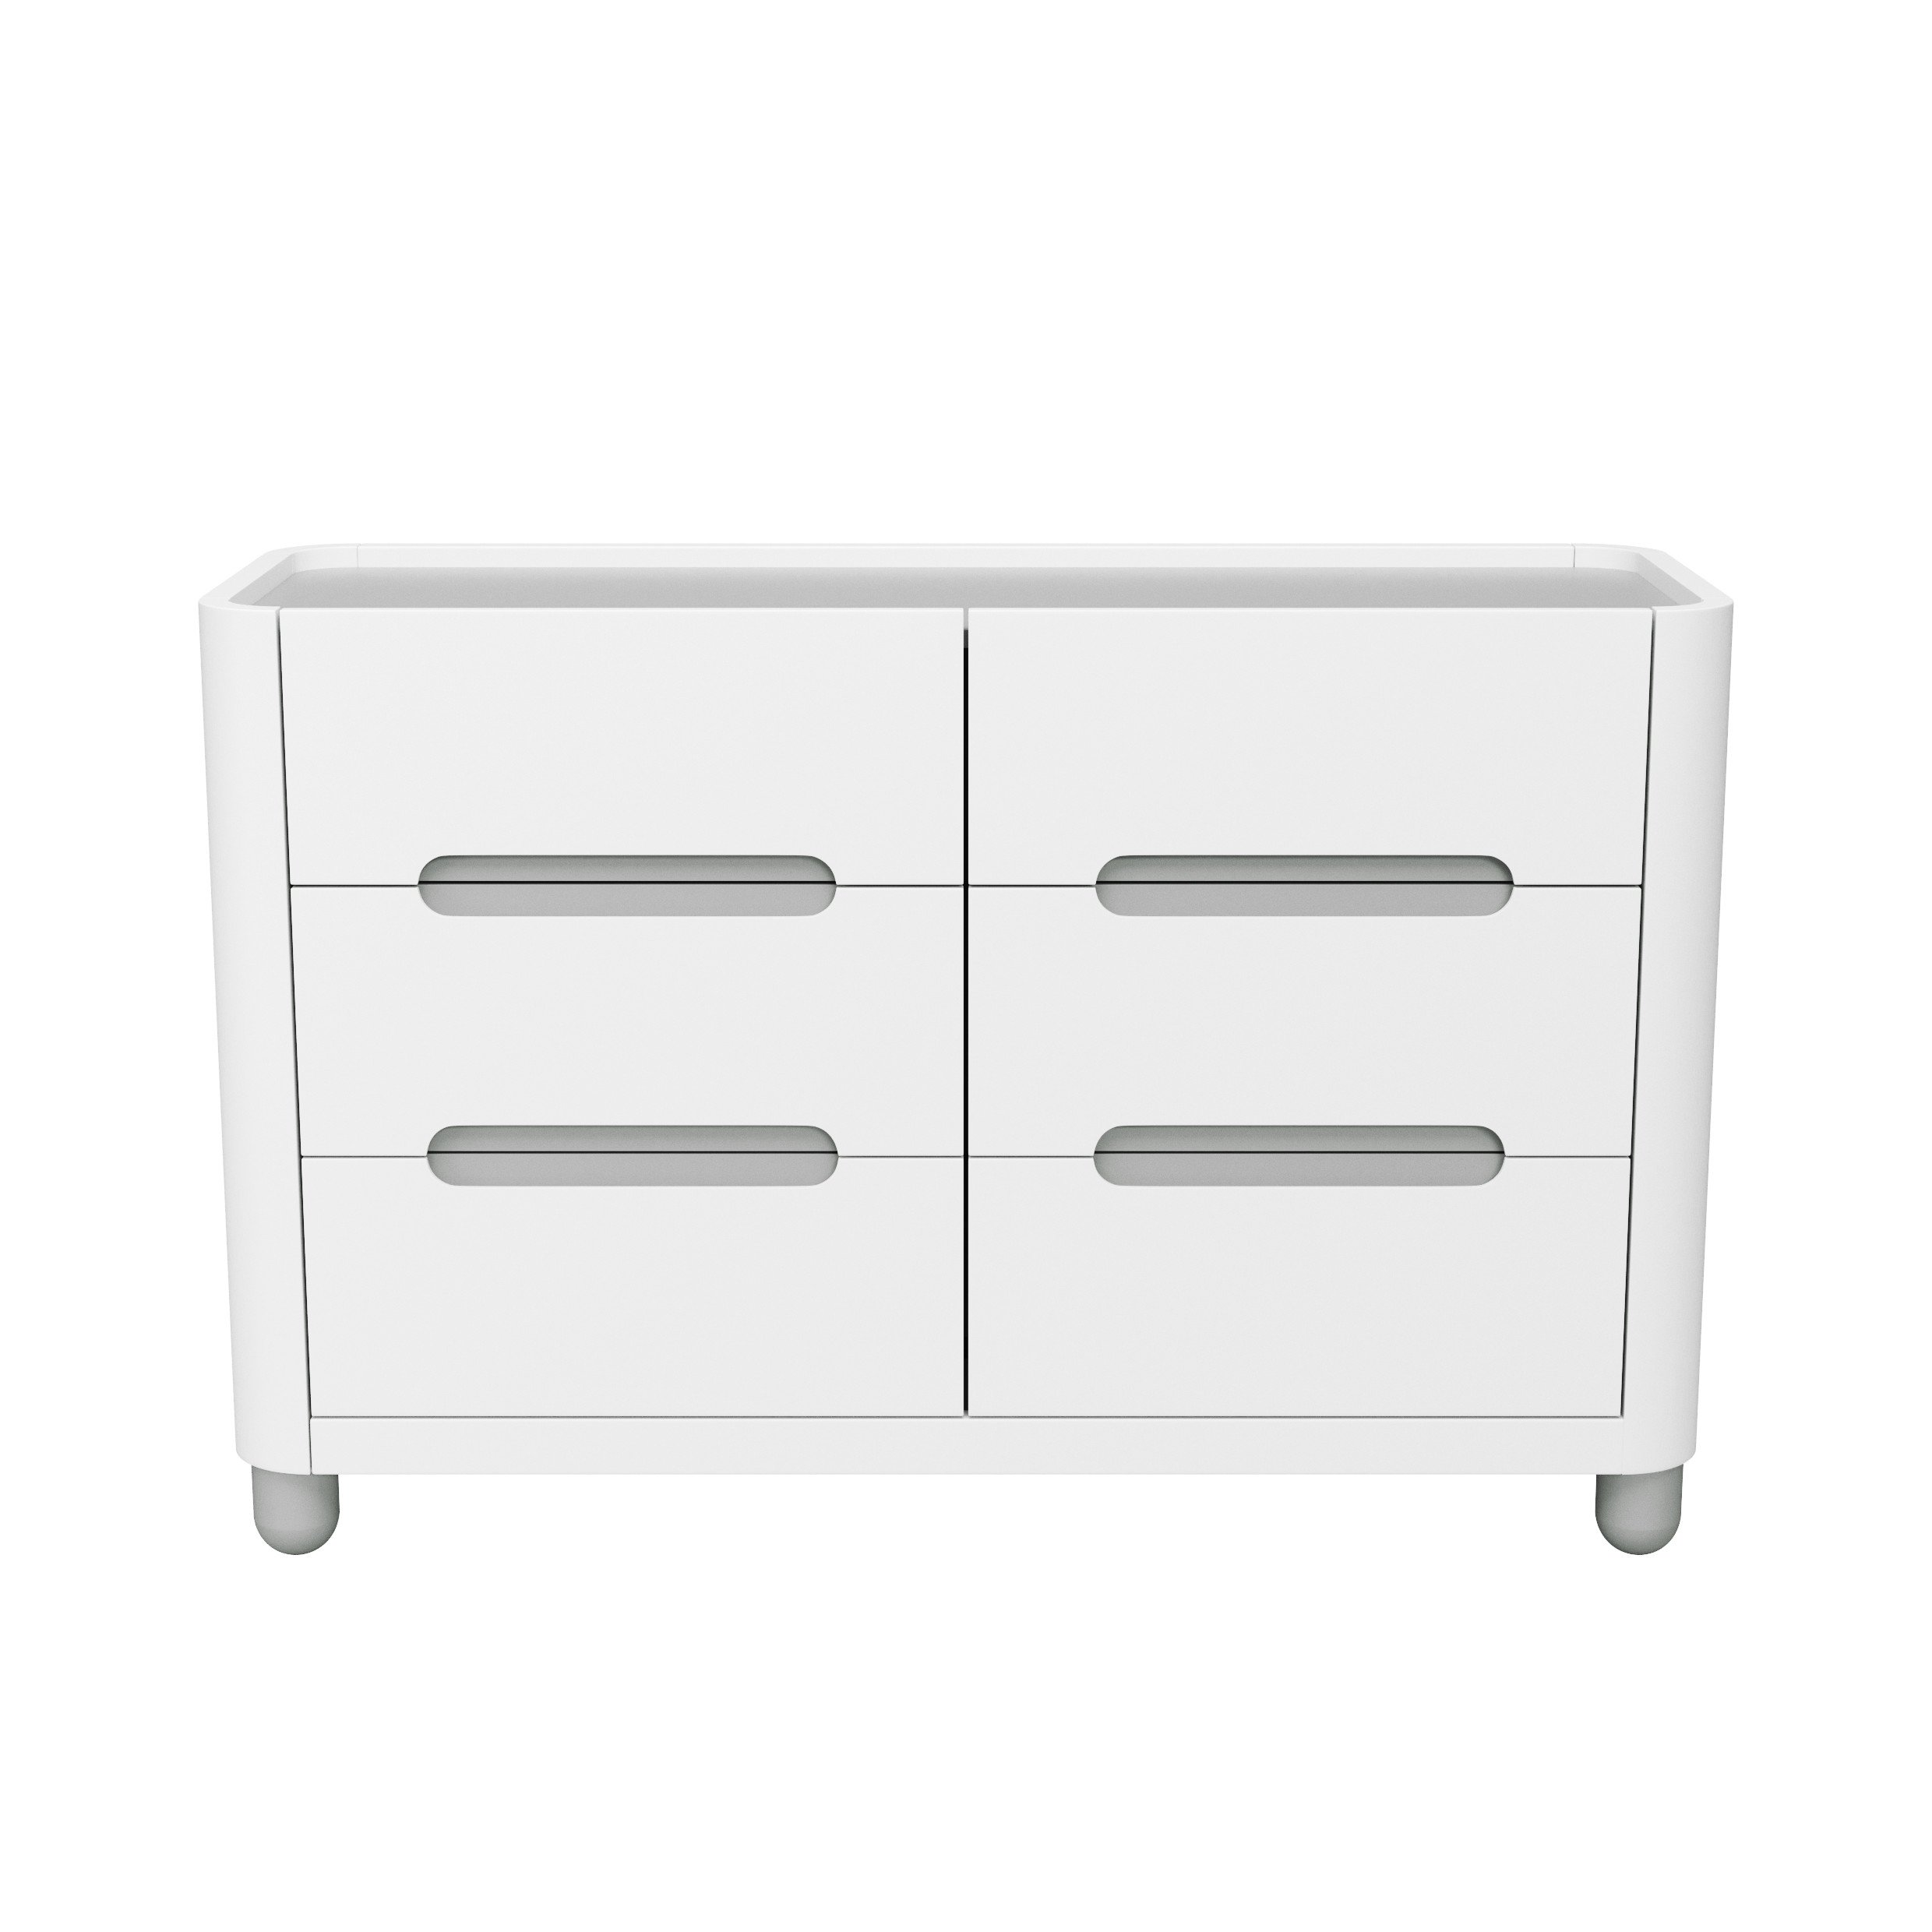 Storkcraft Roland 6 Drawer Dresser, White/Pebble Gray, Kids Bedroom Dresser with 6 Drawers, Wood & Composite Construction, Ideal for Nursery, Toddlers Room, Kids Room by Storkcraft